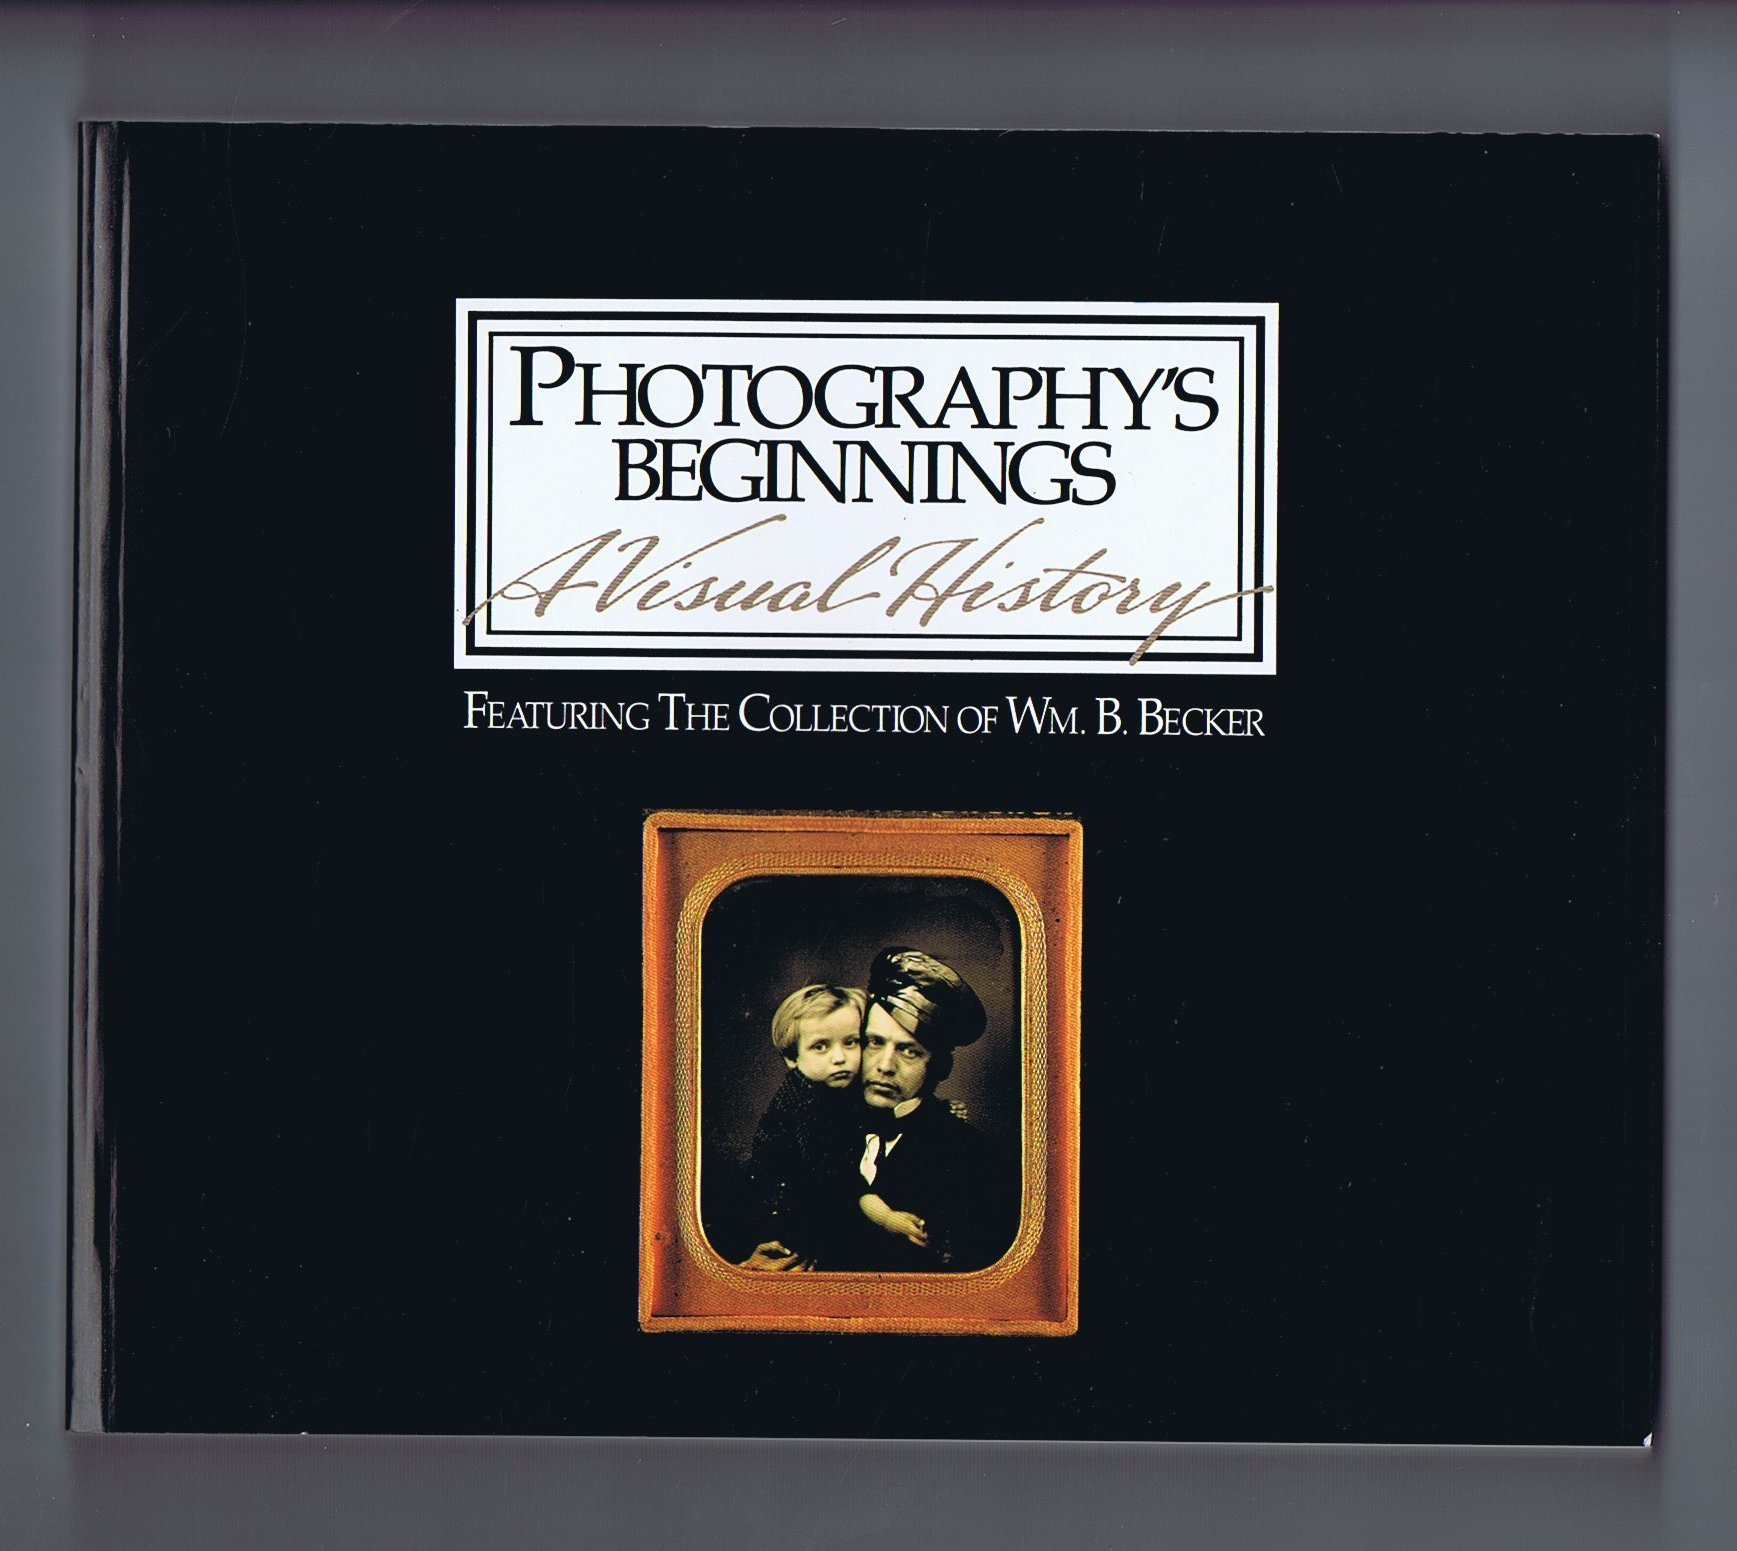 Photography's Beginnings: A Visual History: Featuring the Collection of Wm. B. Becker